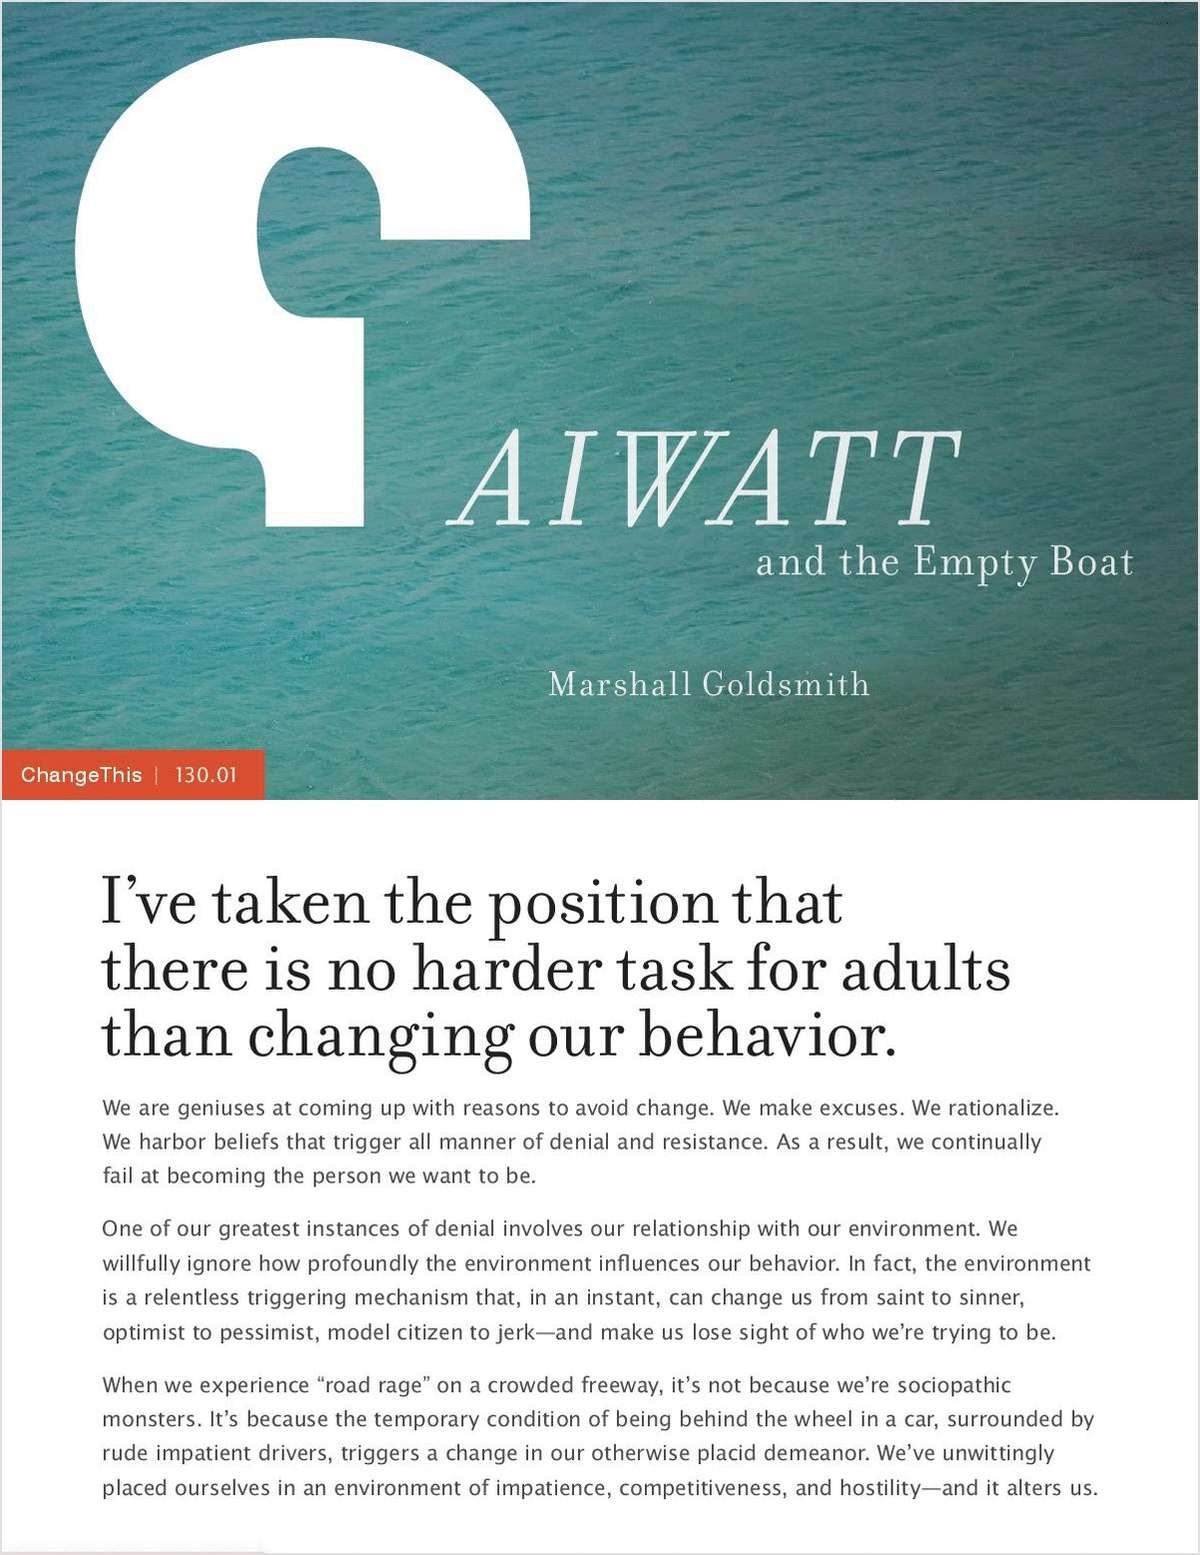 Creating Behavior That Lasts: Using the AIWATT Method